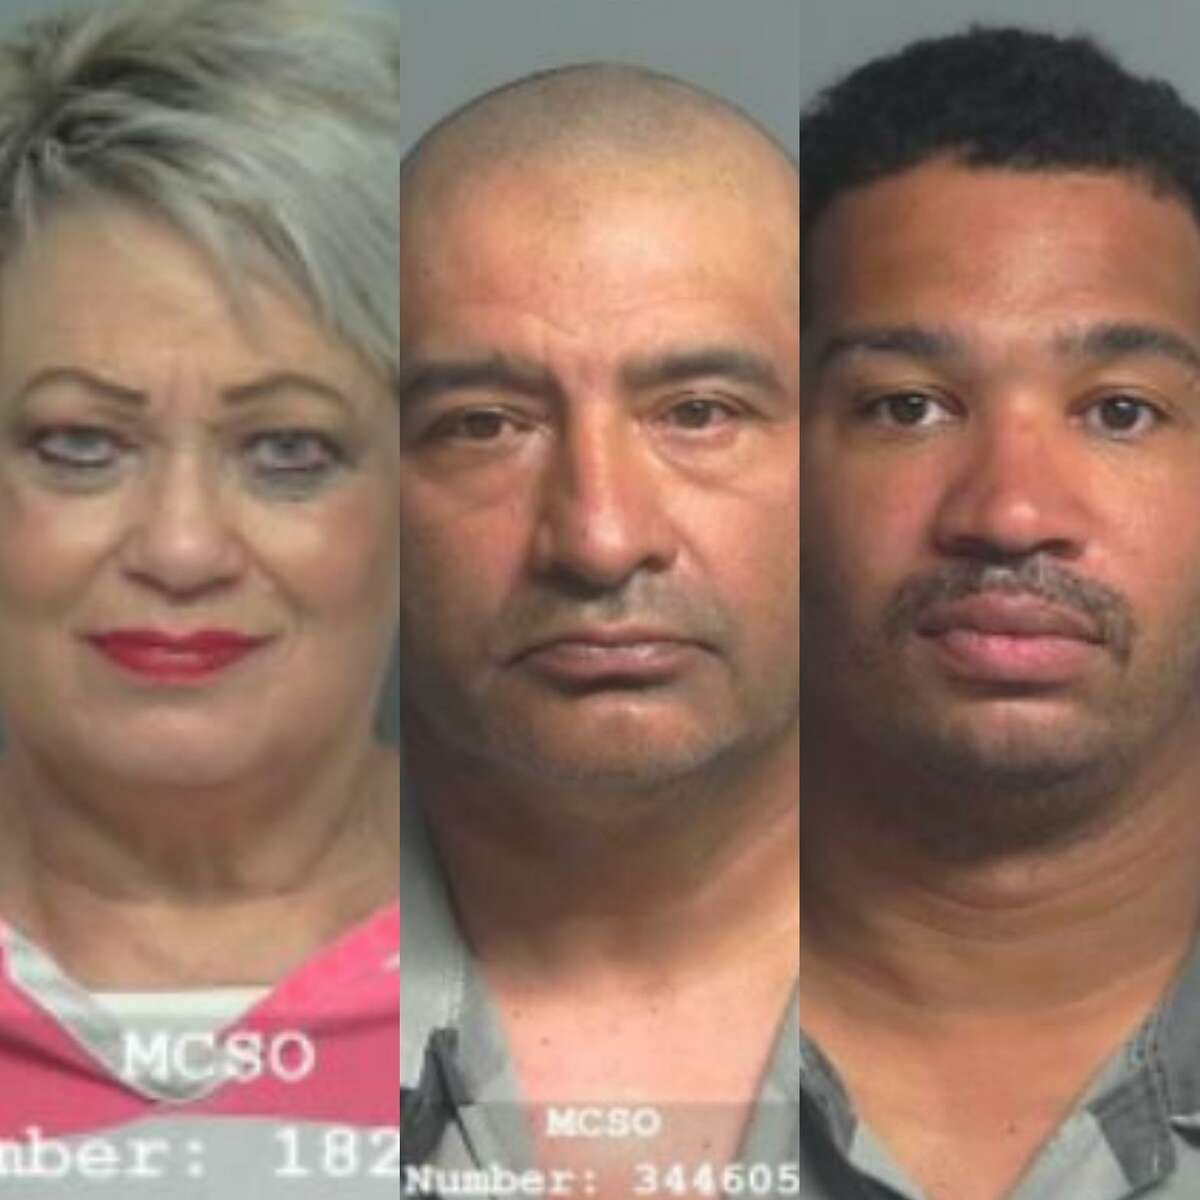 Teresa Joyce Herod, 73, of Willis, Samuel Anthony Saldana, 50, of Baytown, and Christopher Paul Walker, 42, of Conroe, are charged with engaging in organized criminal activity, a second-degree felony.